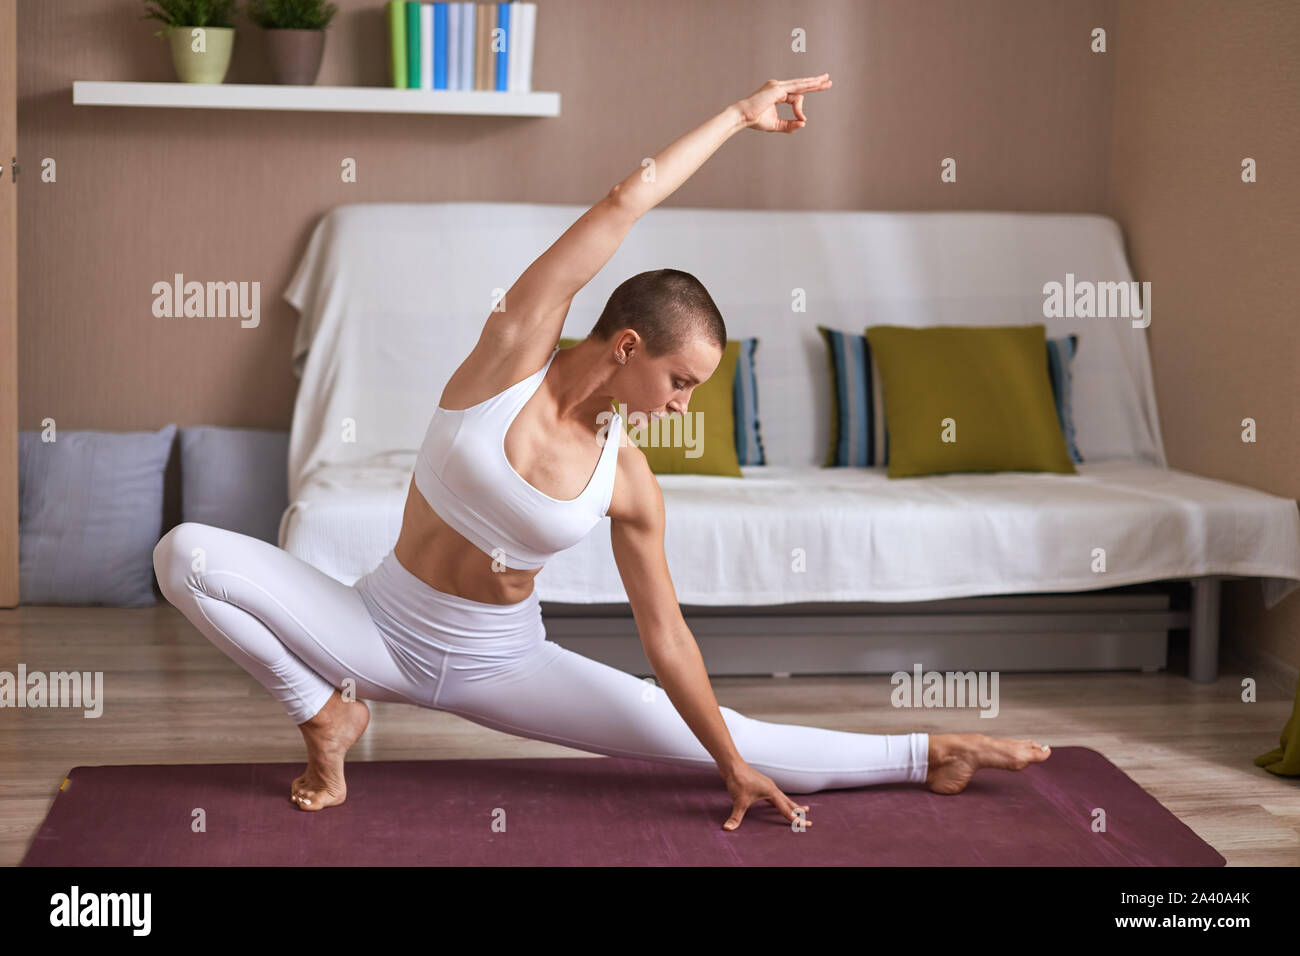 Fit caucasian woman exercising on purple mat in living room, slim and sportive body. Yoga, fitness, pilates. Athletic body of female Stock Photo